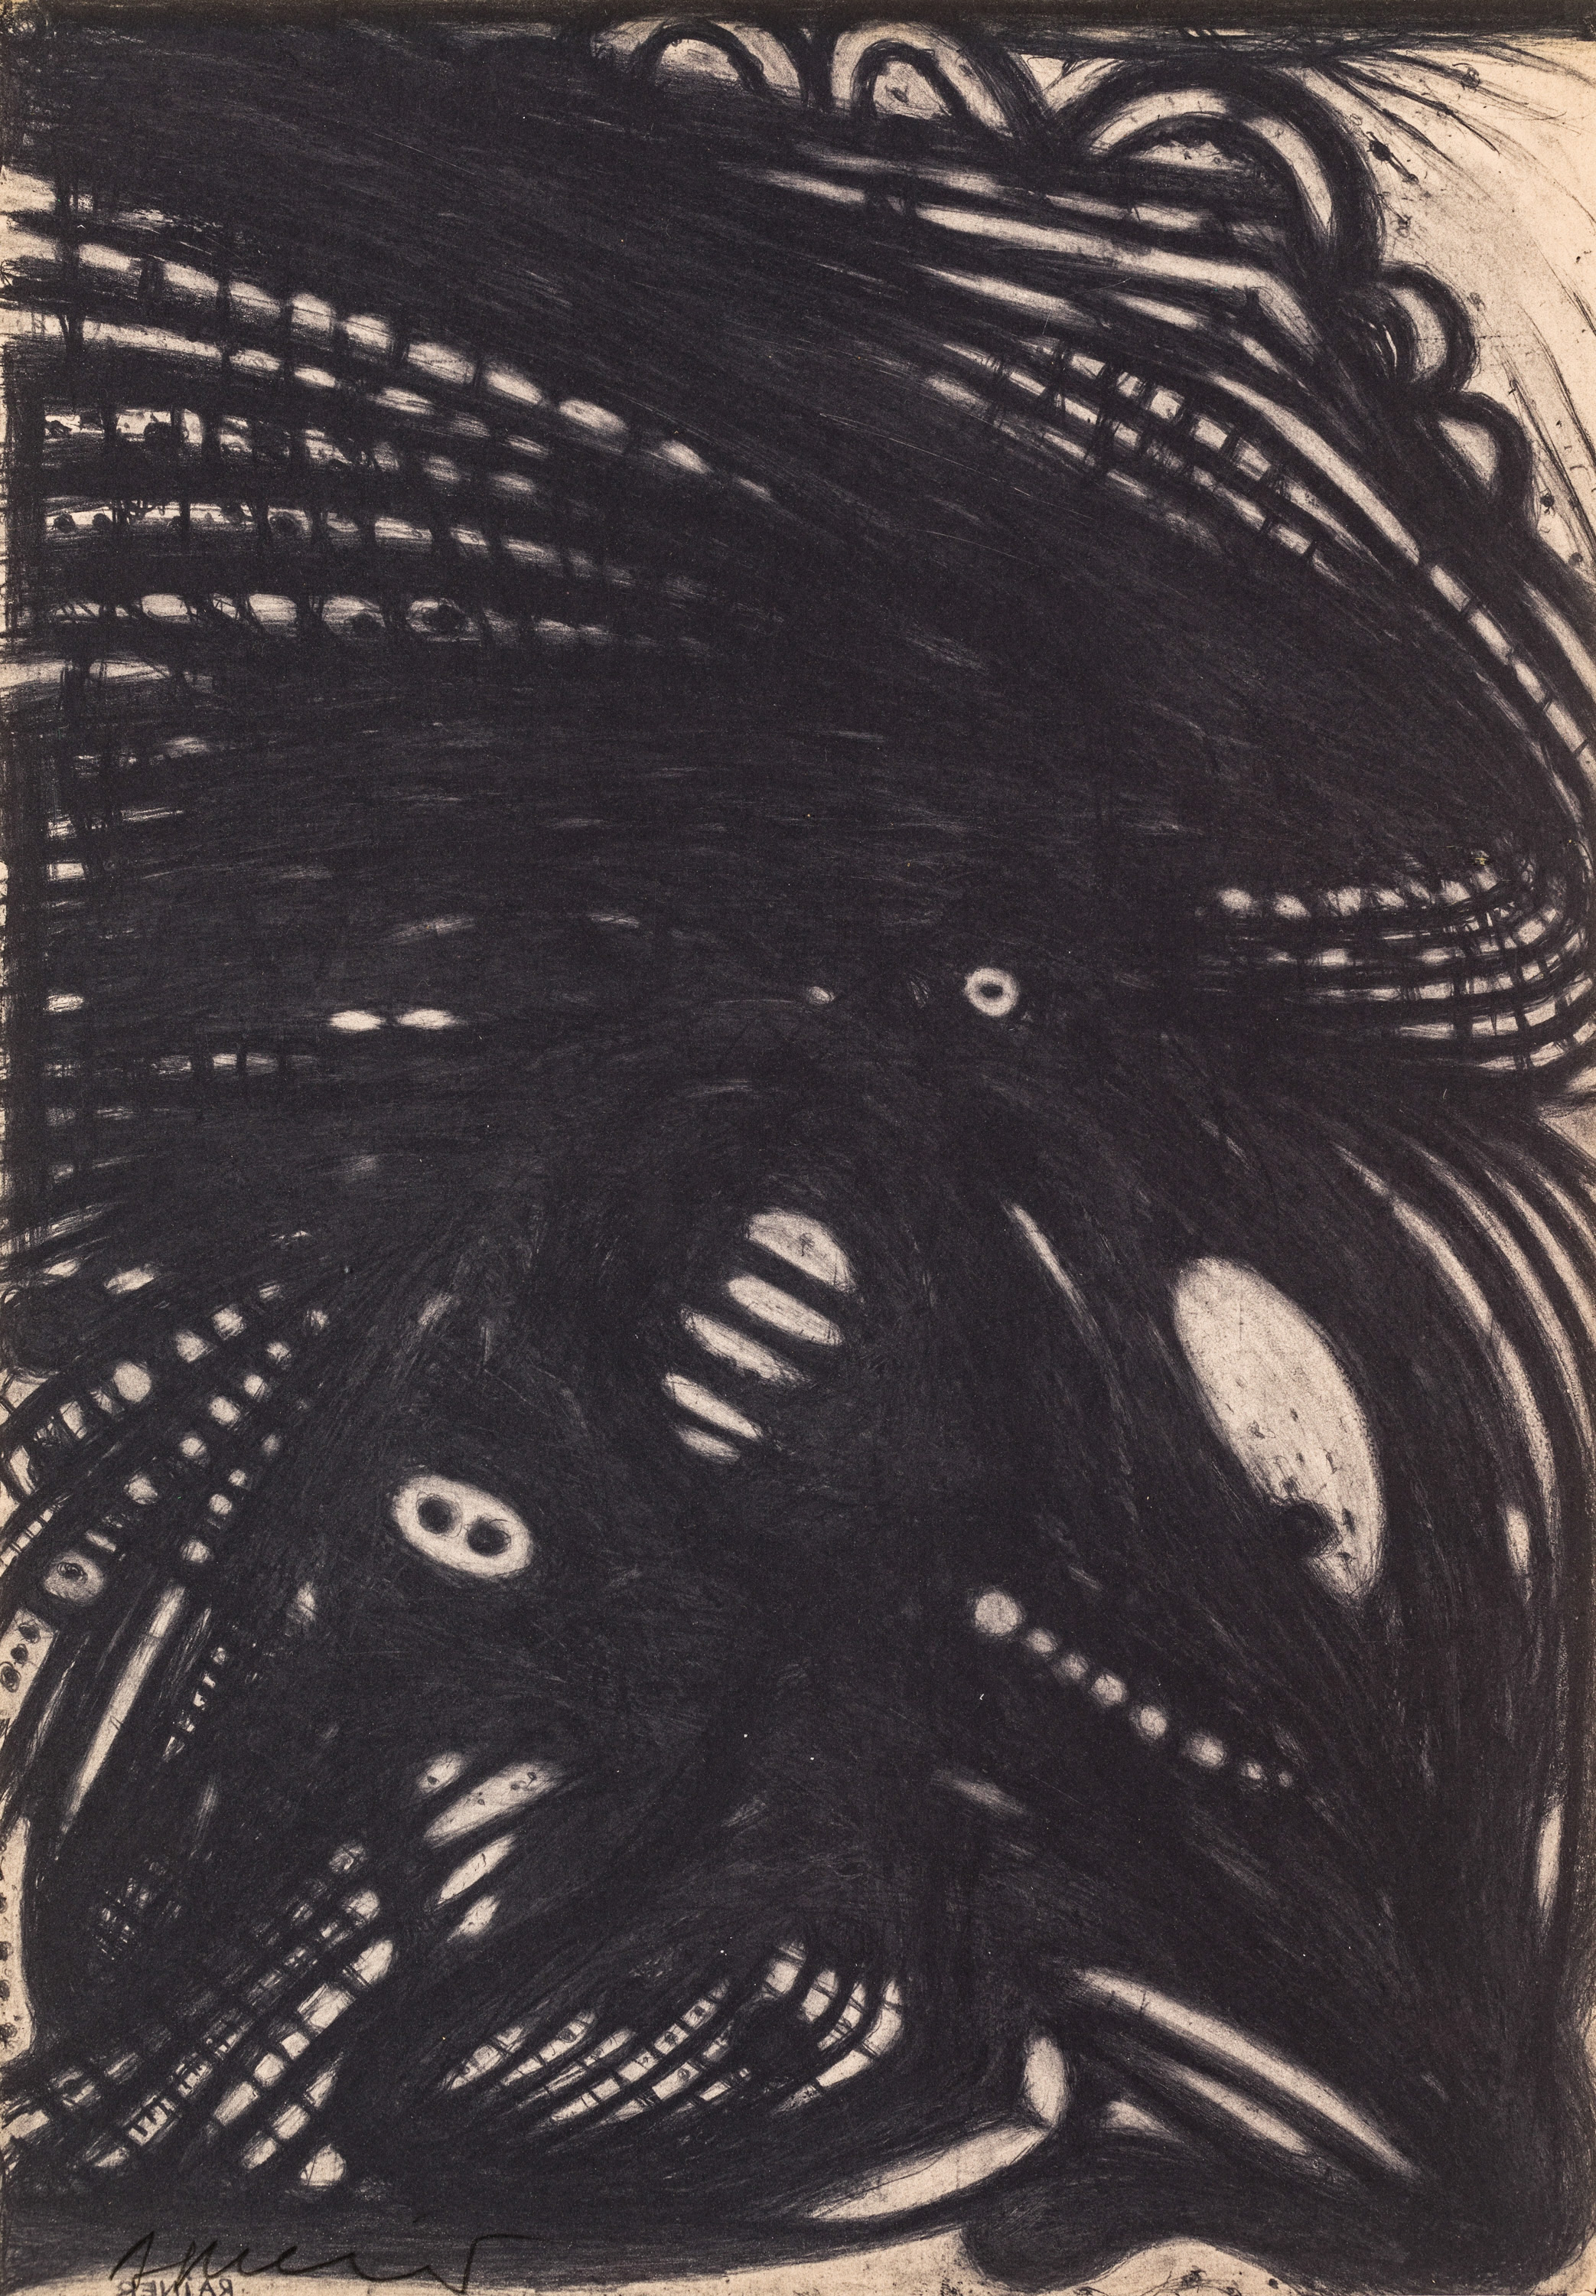 Arnulf Rainer, Ohne Titel / untitled